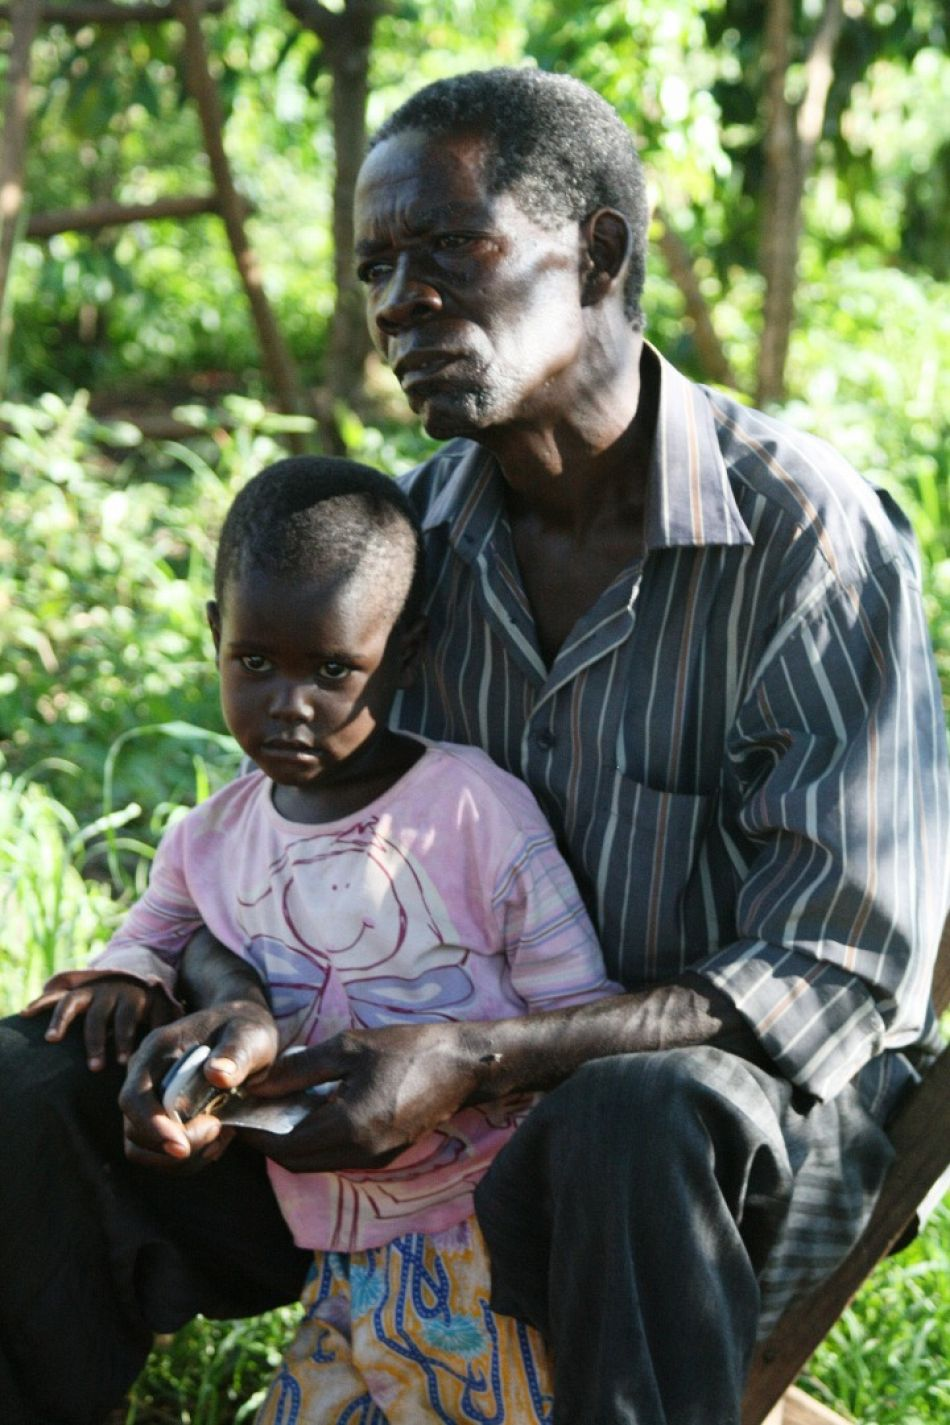 pOne key intervention for managing severe malaria is through rectal artesunate ndash a treatment that can slow down the diseasersquos progression in severe cases This must be followed by comprehensive case management at a health facility and a full dose of antimalarial medicineppHere a father sits with his son whose life was saved when the village health team provided rectal artesunate to buy enough time for him to get to the health centreppCopyright Malaria Consortiump